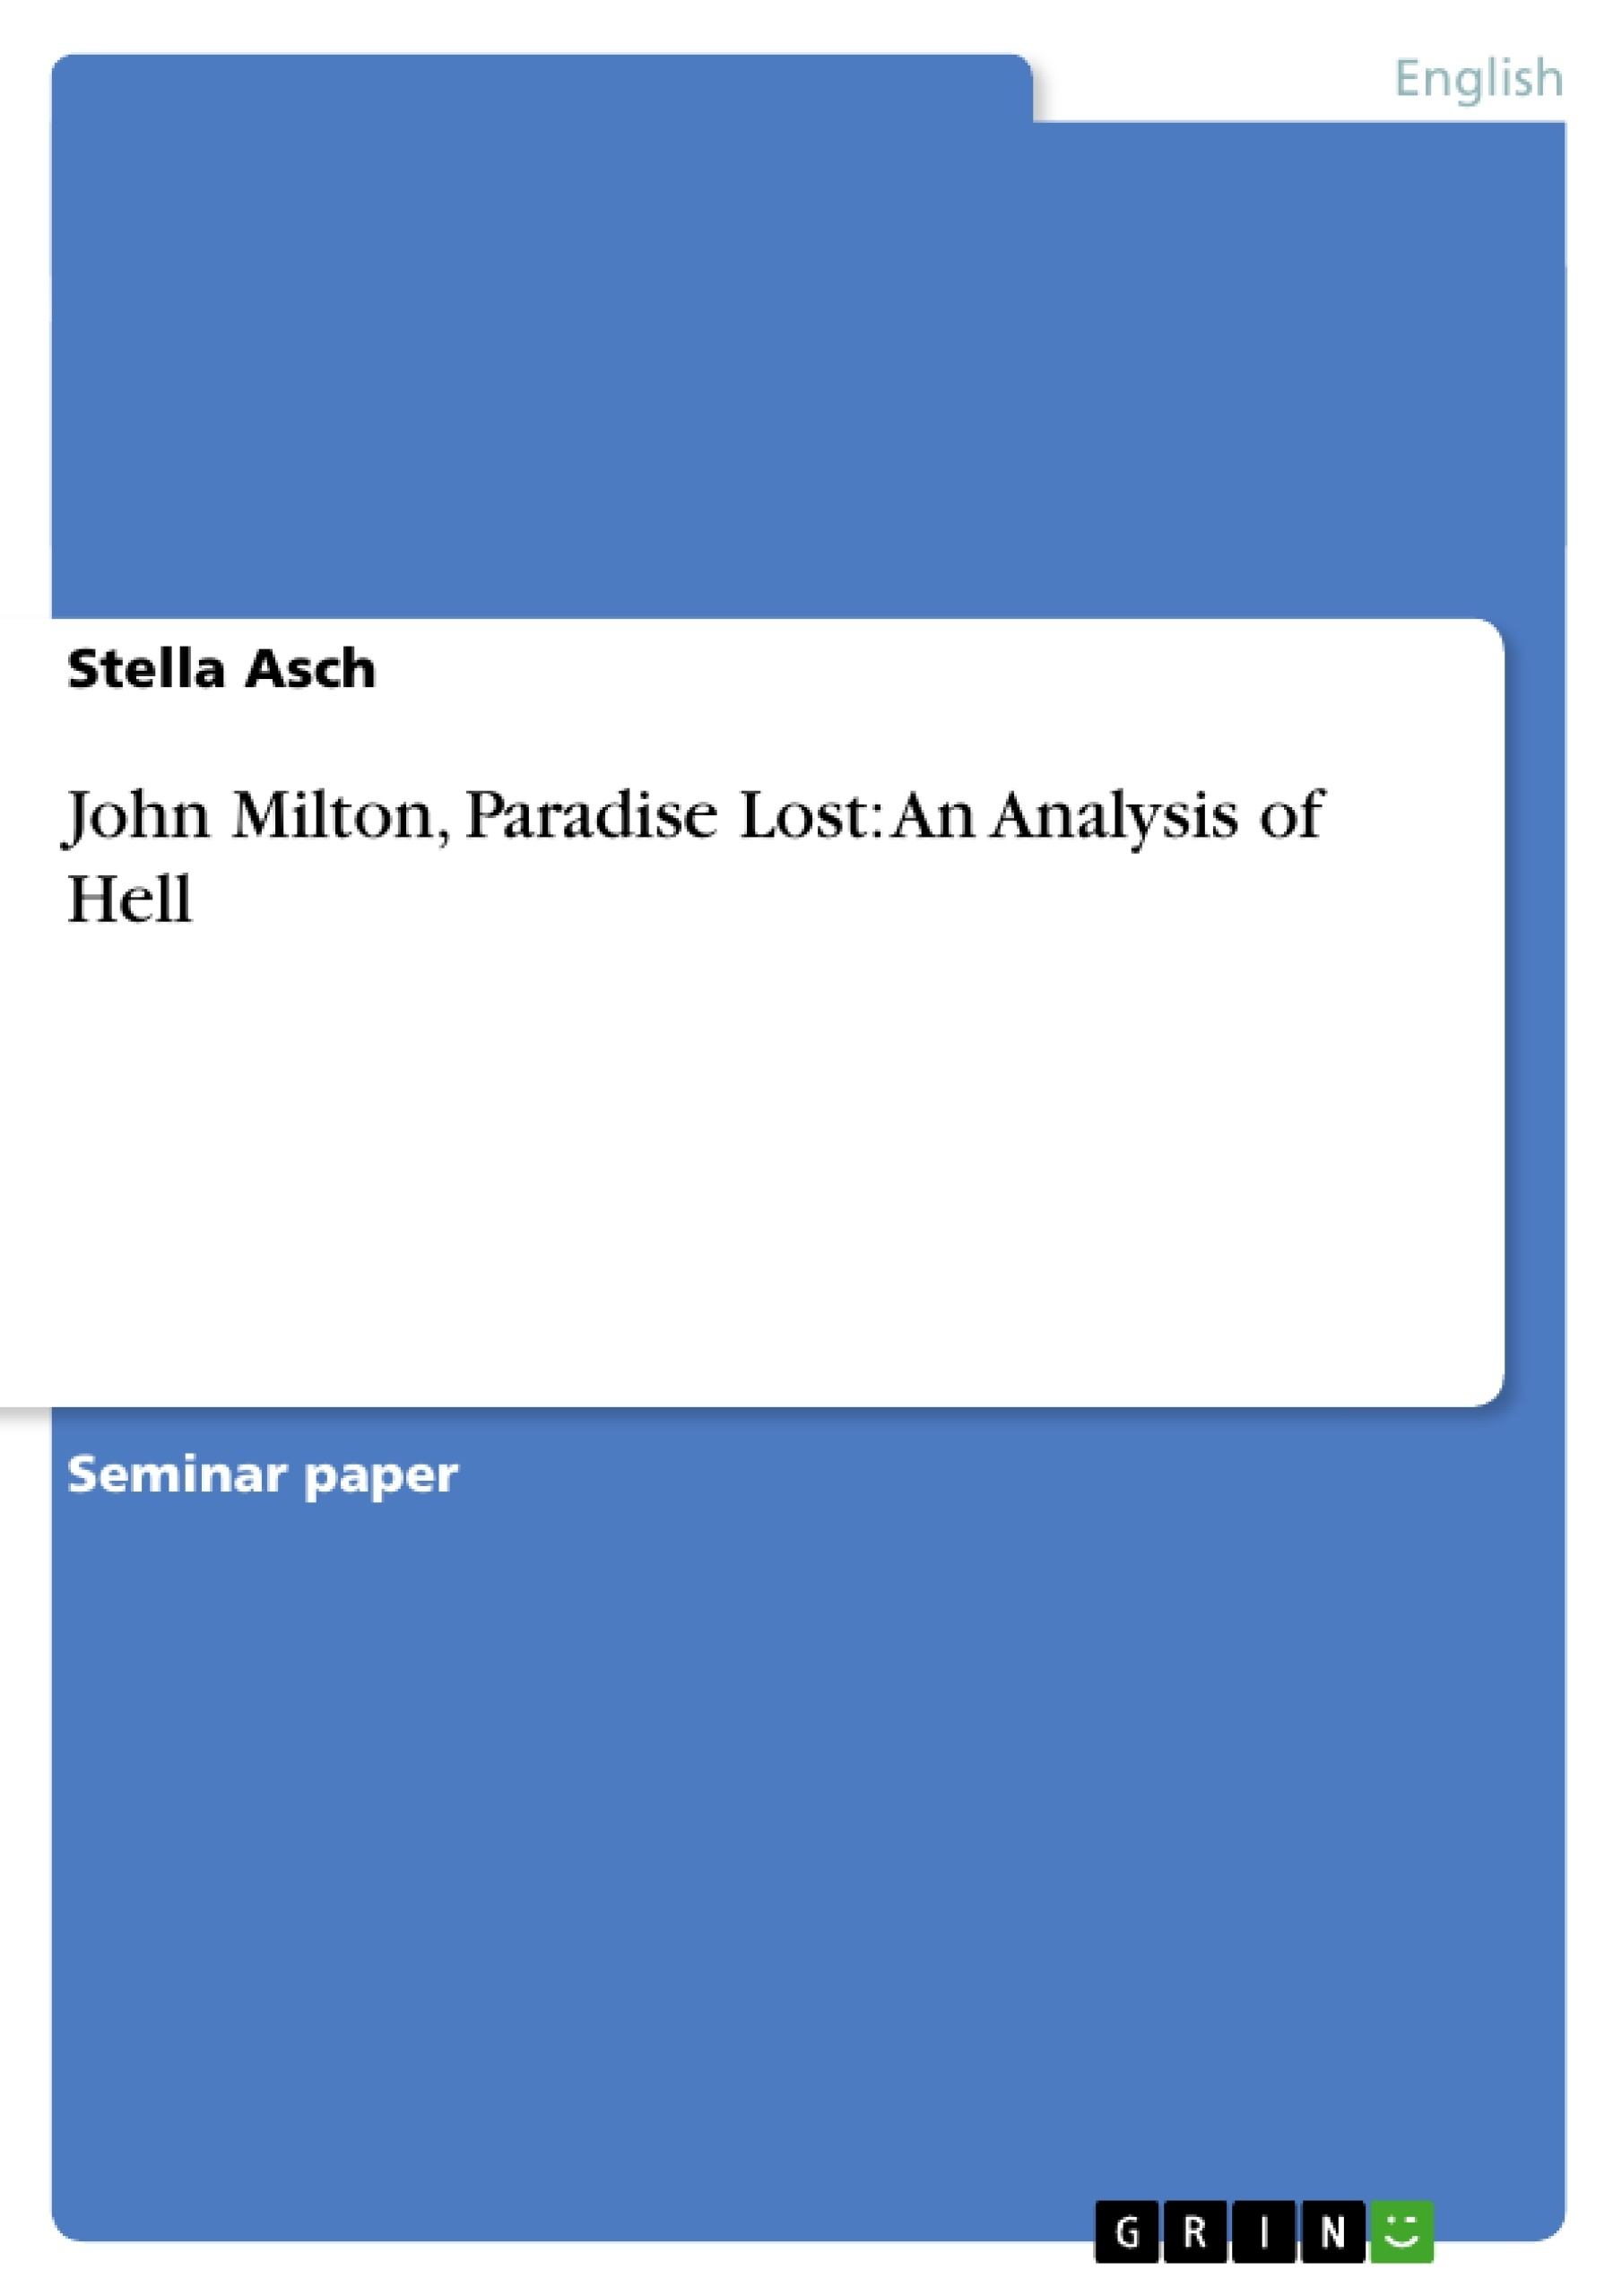 john milton paradise lost an analysis of hell publish your  upload your own papers earn money and win an iphone x